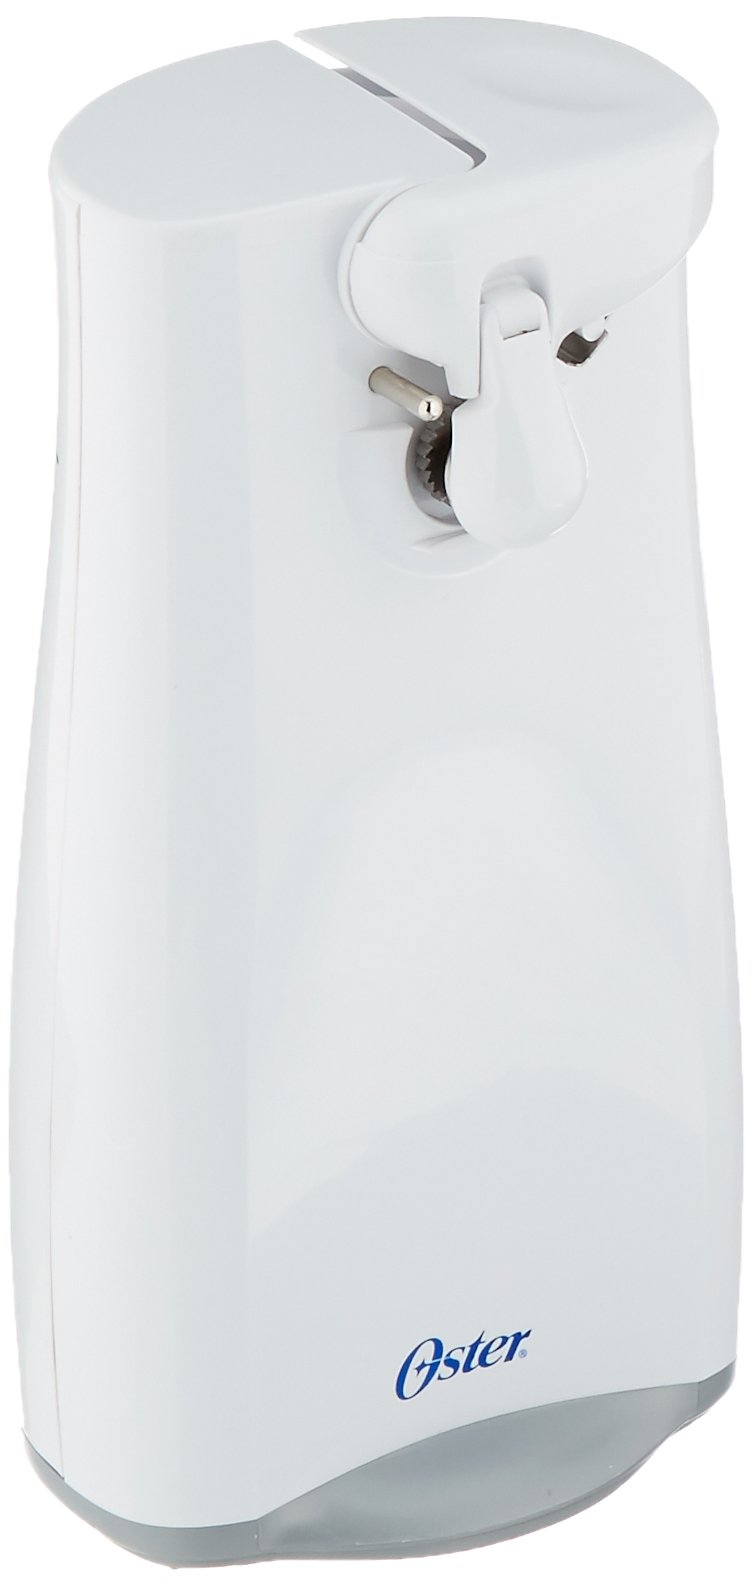 Oster 3125 Electric Can Opener, 220 Volts (Not for USA),White by Oster